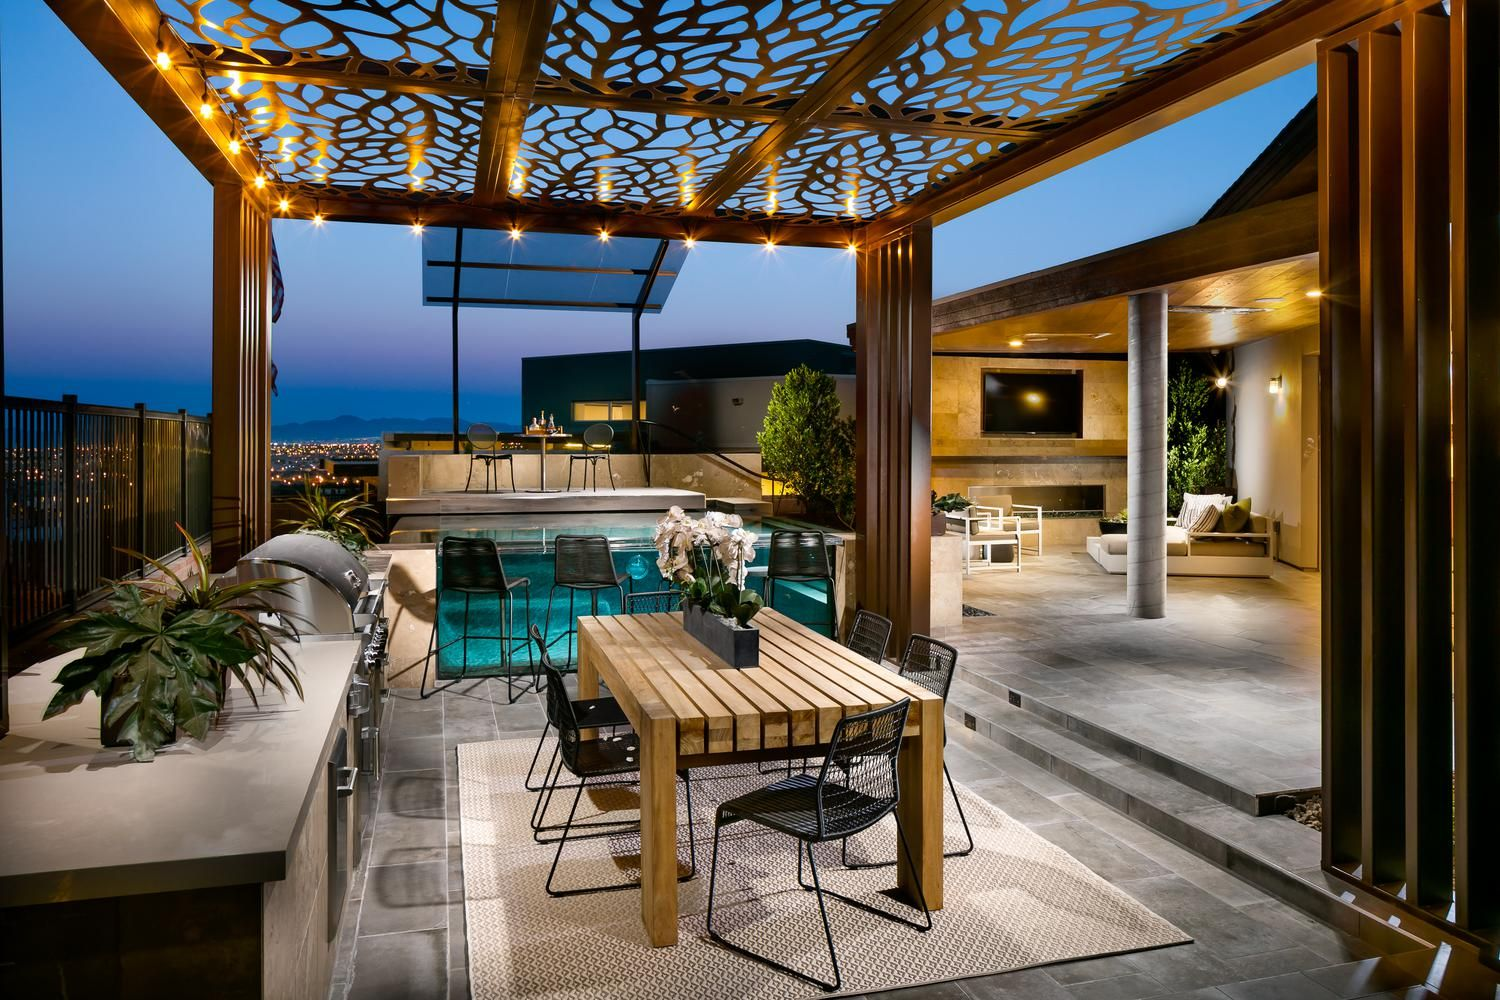 Outdoor Dining Done Right Pictured Above Granite Heights Onyx Model Home In Las Vegas Nv Patio Backyard Patio Outdoor Living Space